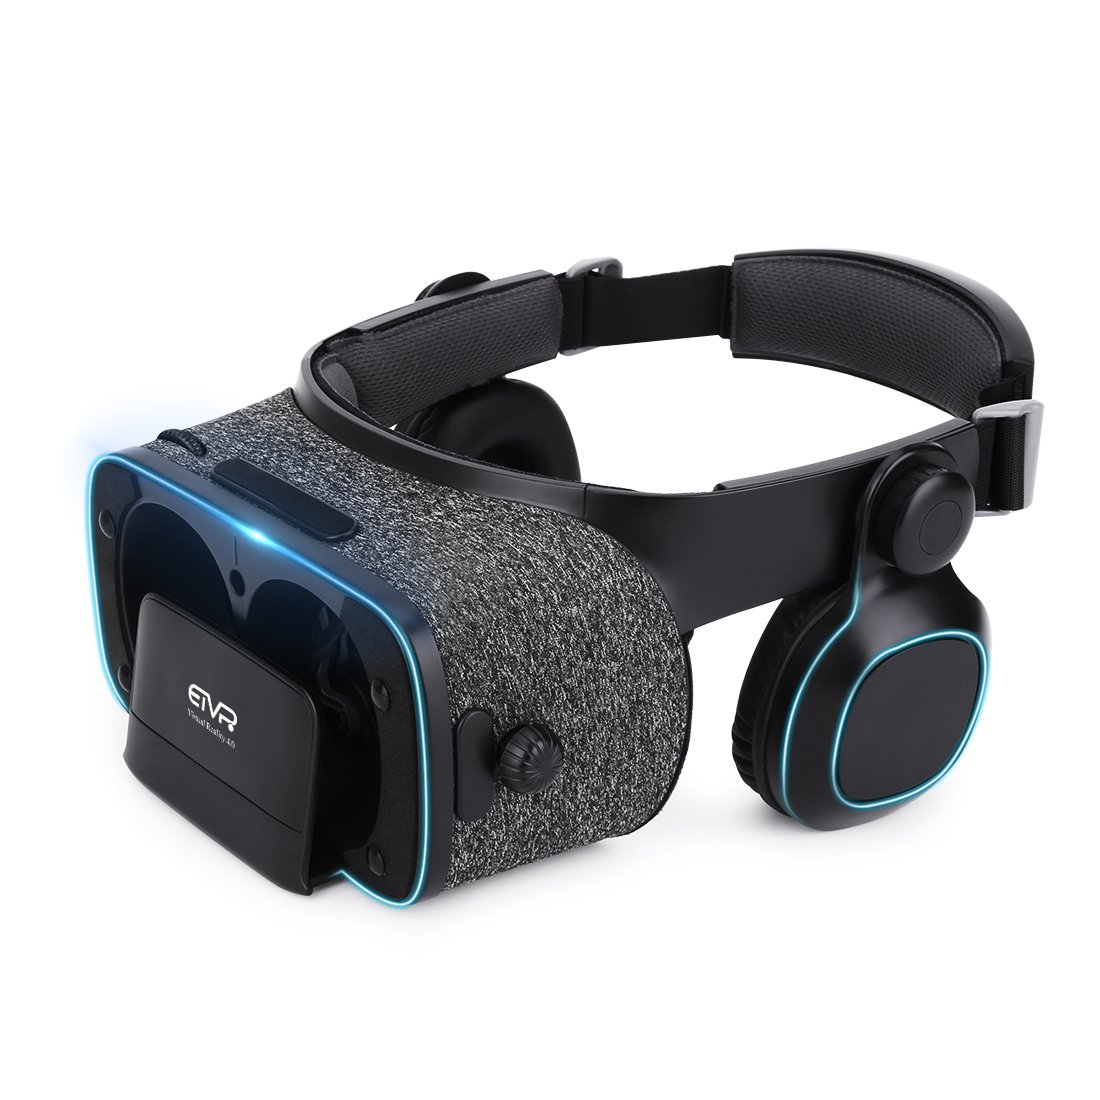 ETVR Upgraded 3D VR Glasses for Movies and Games with Stereo Headphone - More Lightweight Virtual Reality Headset with 120 Degree FOV - Fit for 4.7''-6.2'' iPhone & Android Smartphones - Black